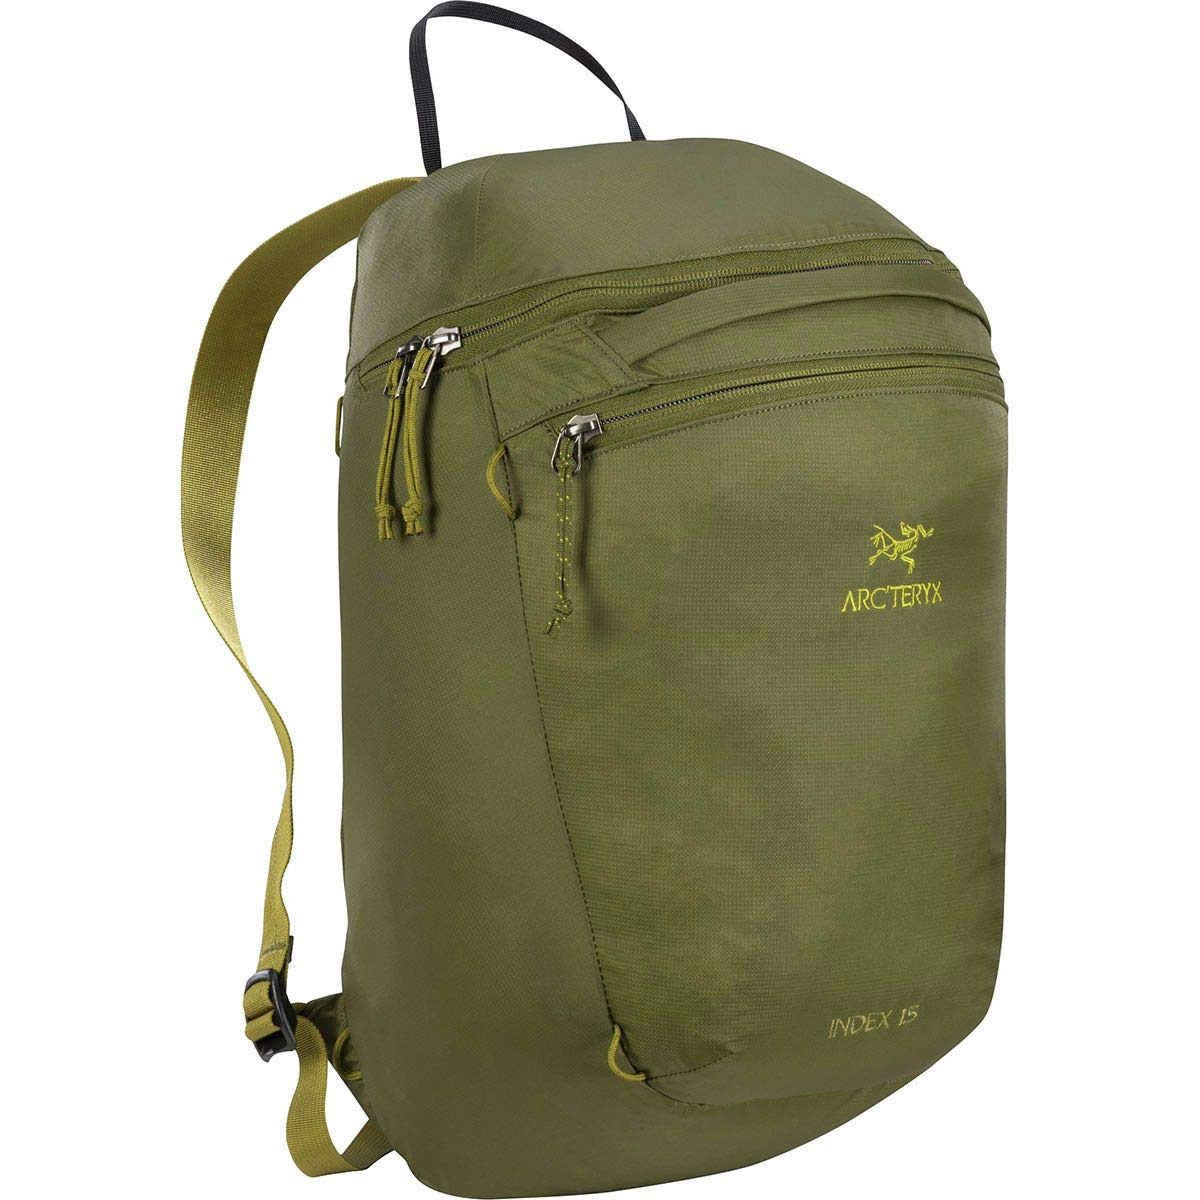 81f3513538 Amazon.com: ARC'TERYX Index 15 Backpack (Black): Sports & Outdoors